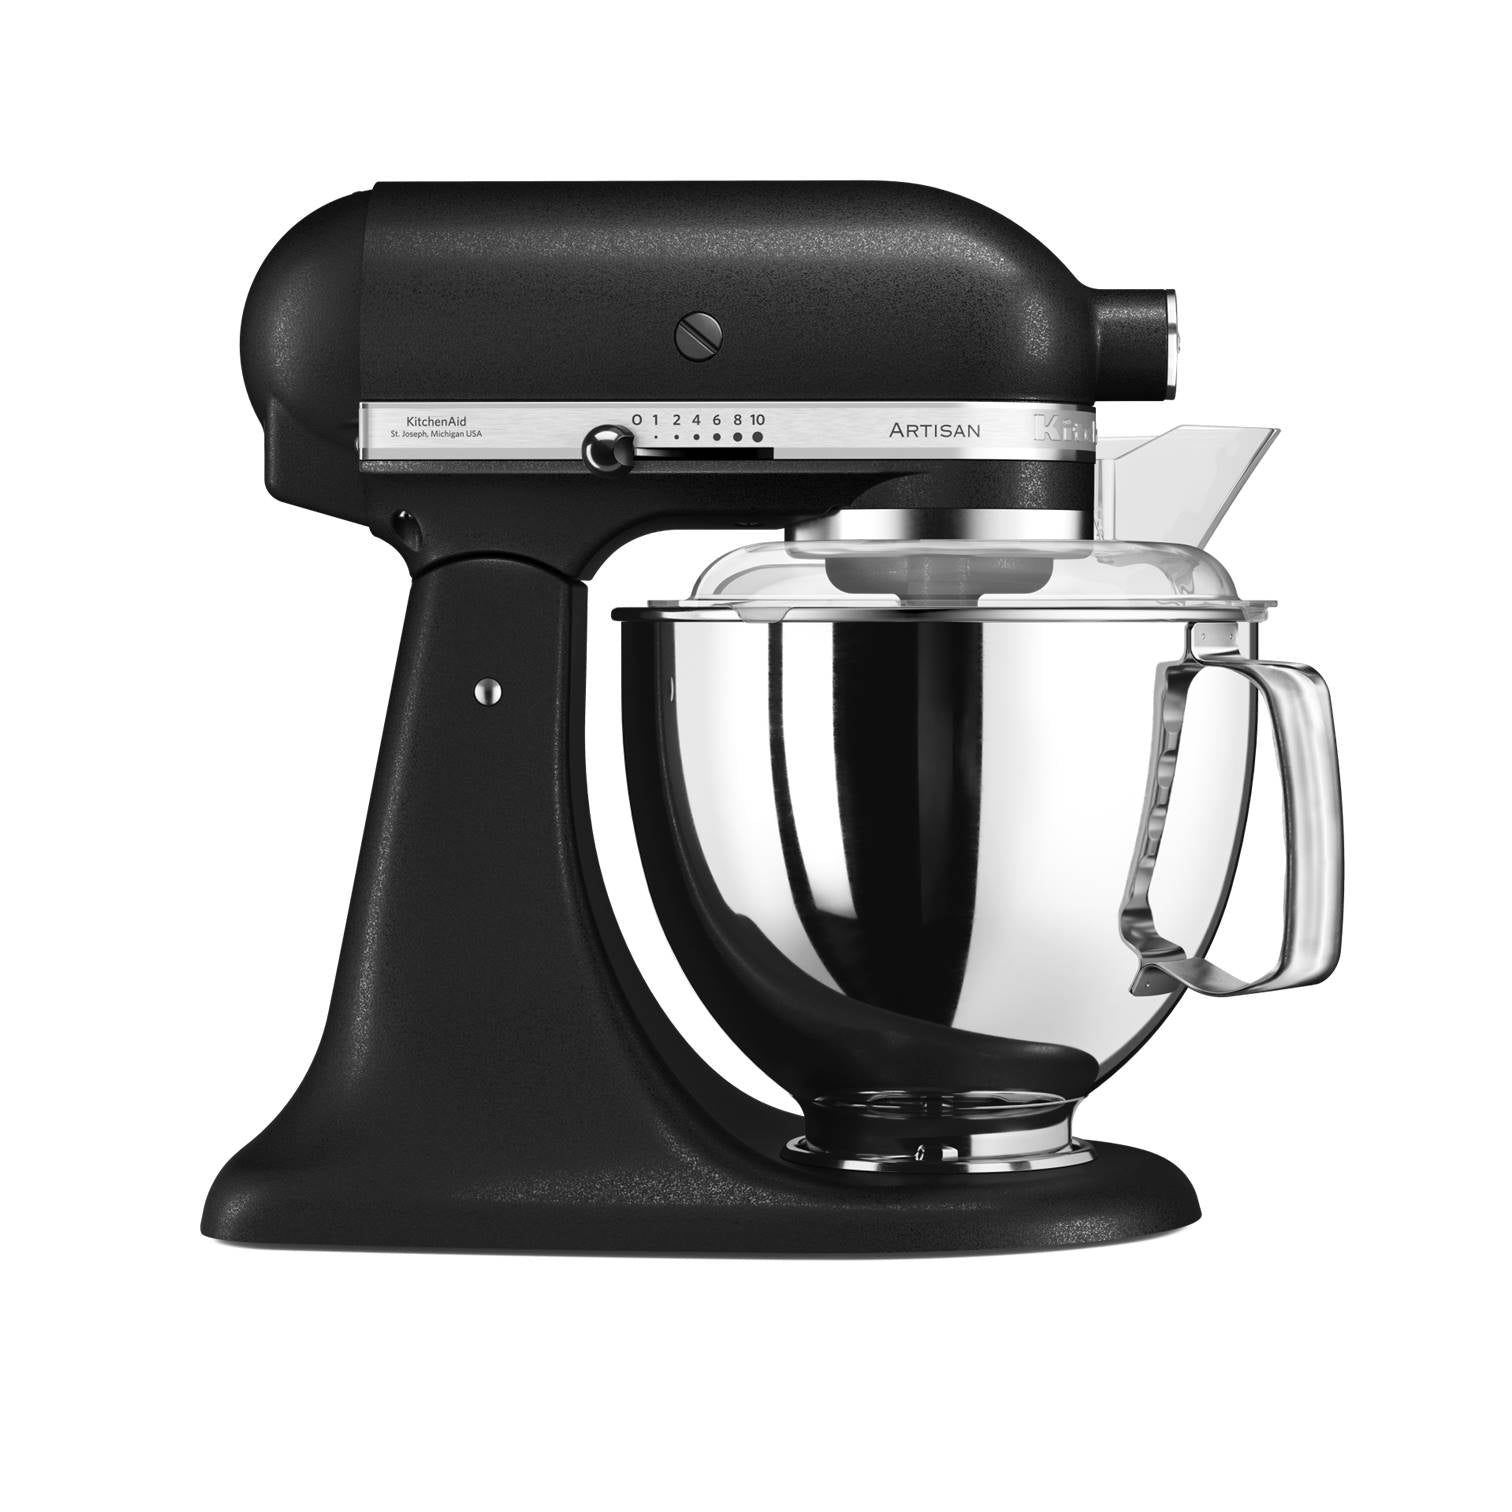 4.8L Mixer in Cast Iron Black